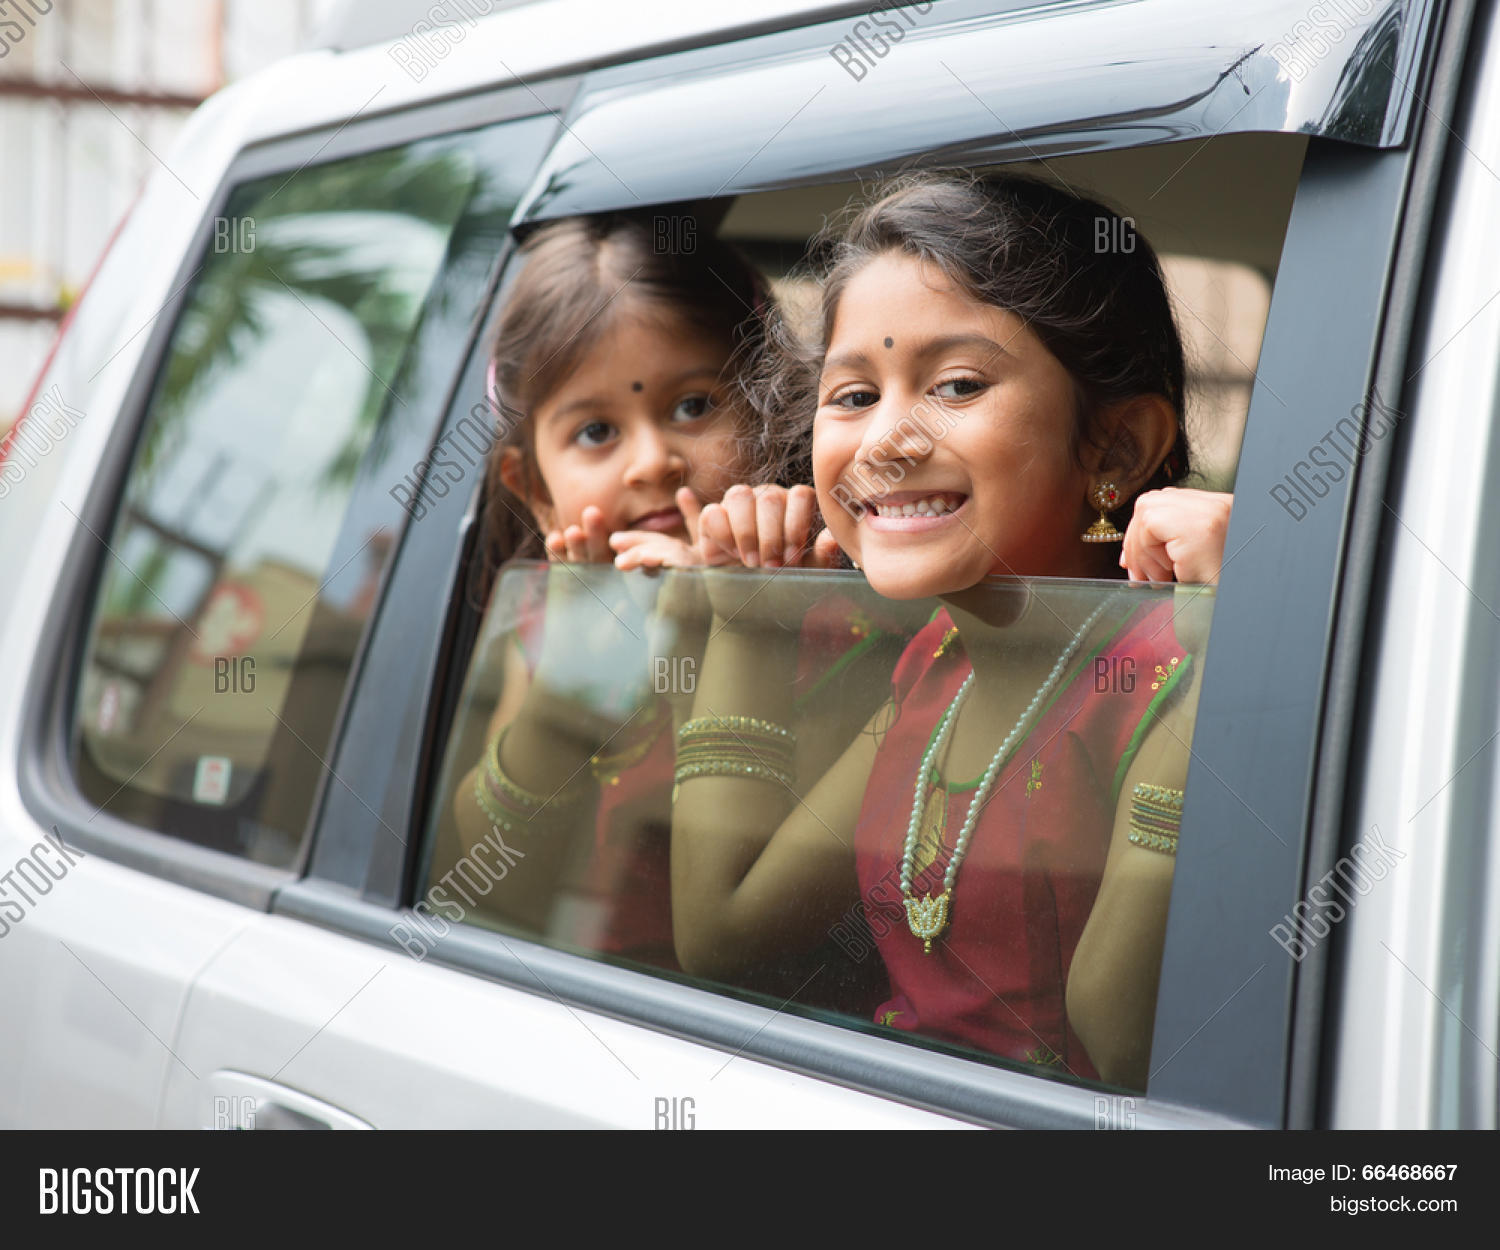 Asian Indian Family Going To A Vacation Happy Children Sitting Inside Car With Window Open